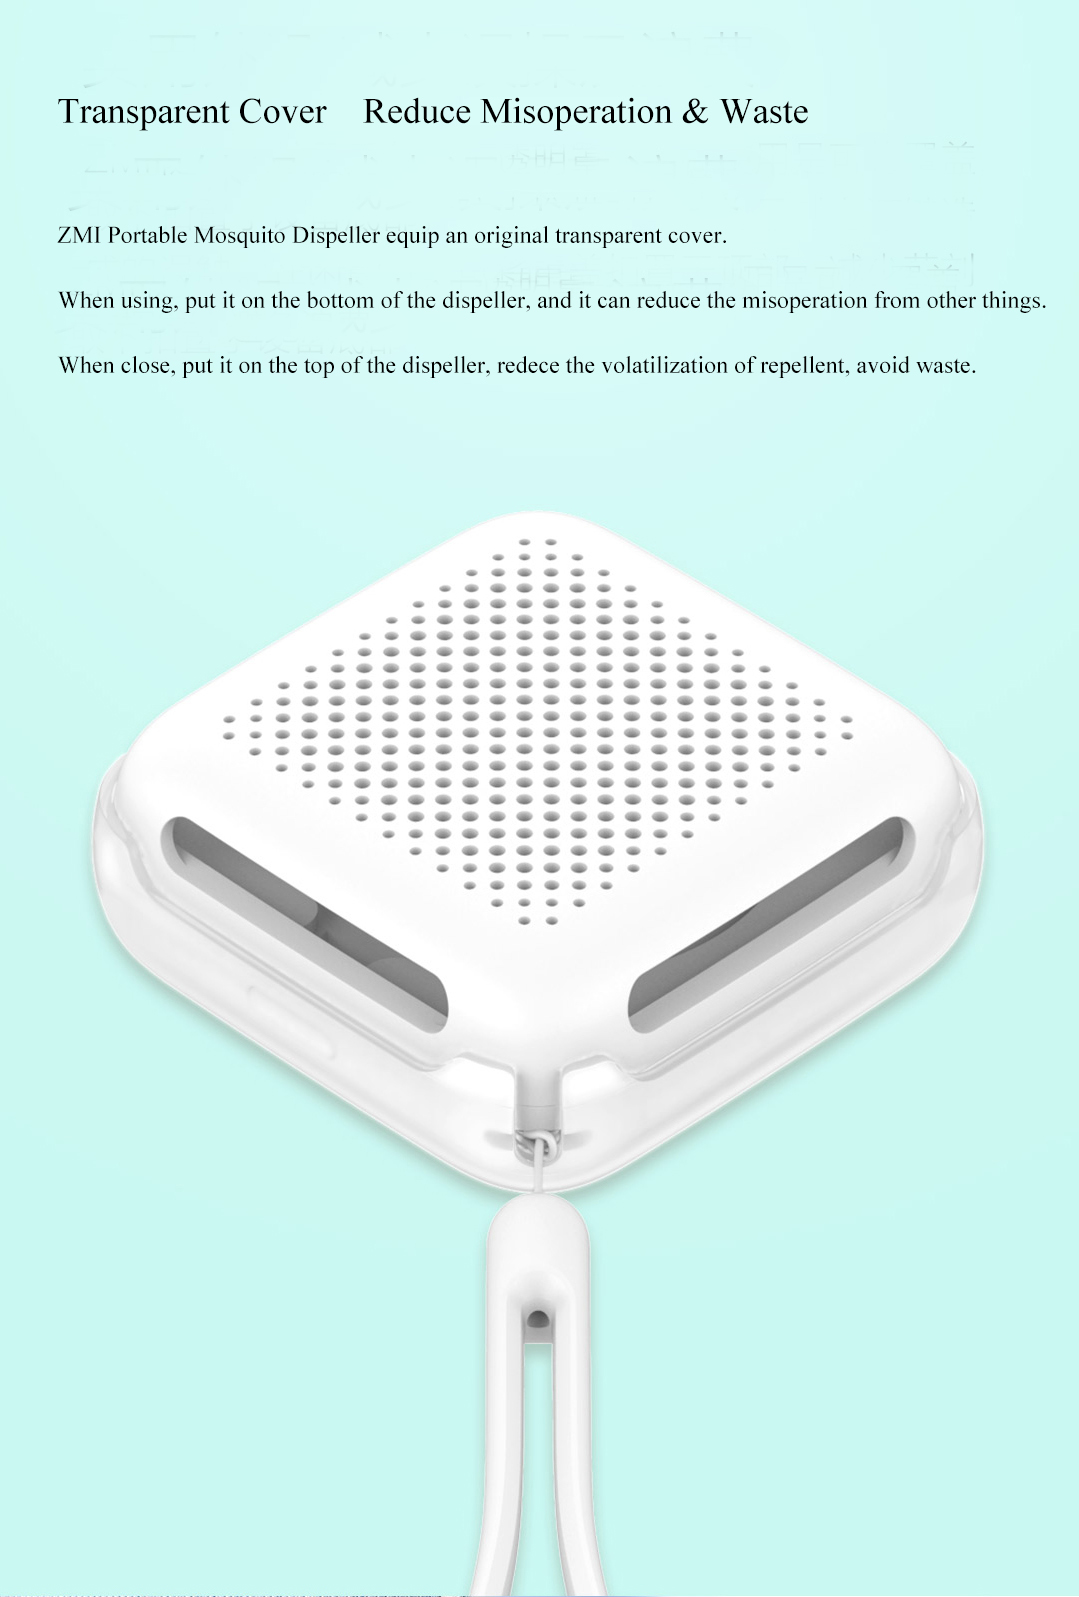 XIAOMI ZMI Portable Mosquito Repeller Dispeller Bugs Epochal Mini Garden Outdoor Dust-proof Mosqutio Dispeller for Garden Camping Hunting Personal Using